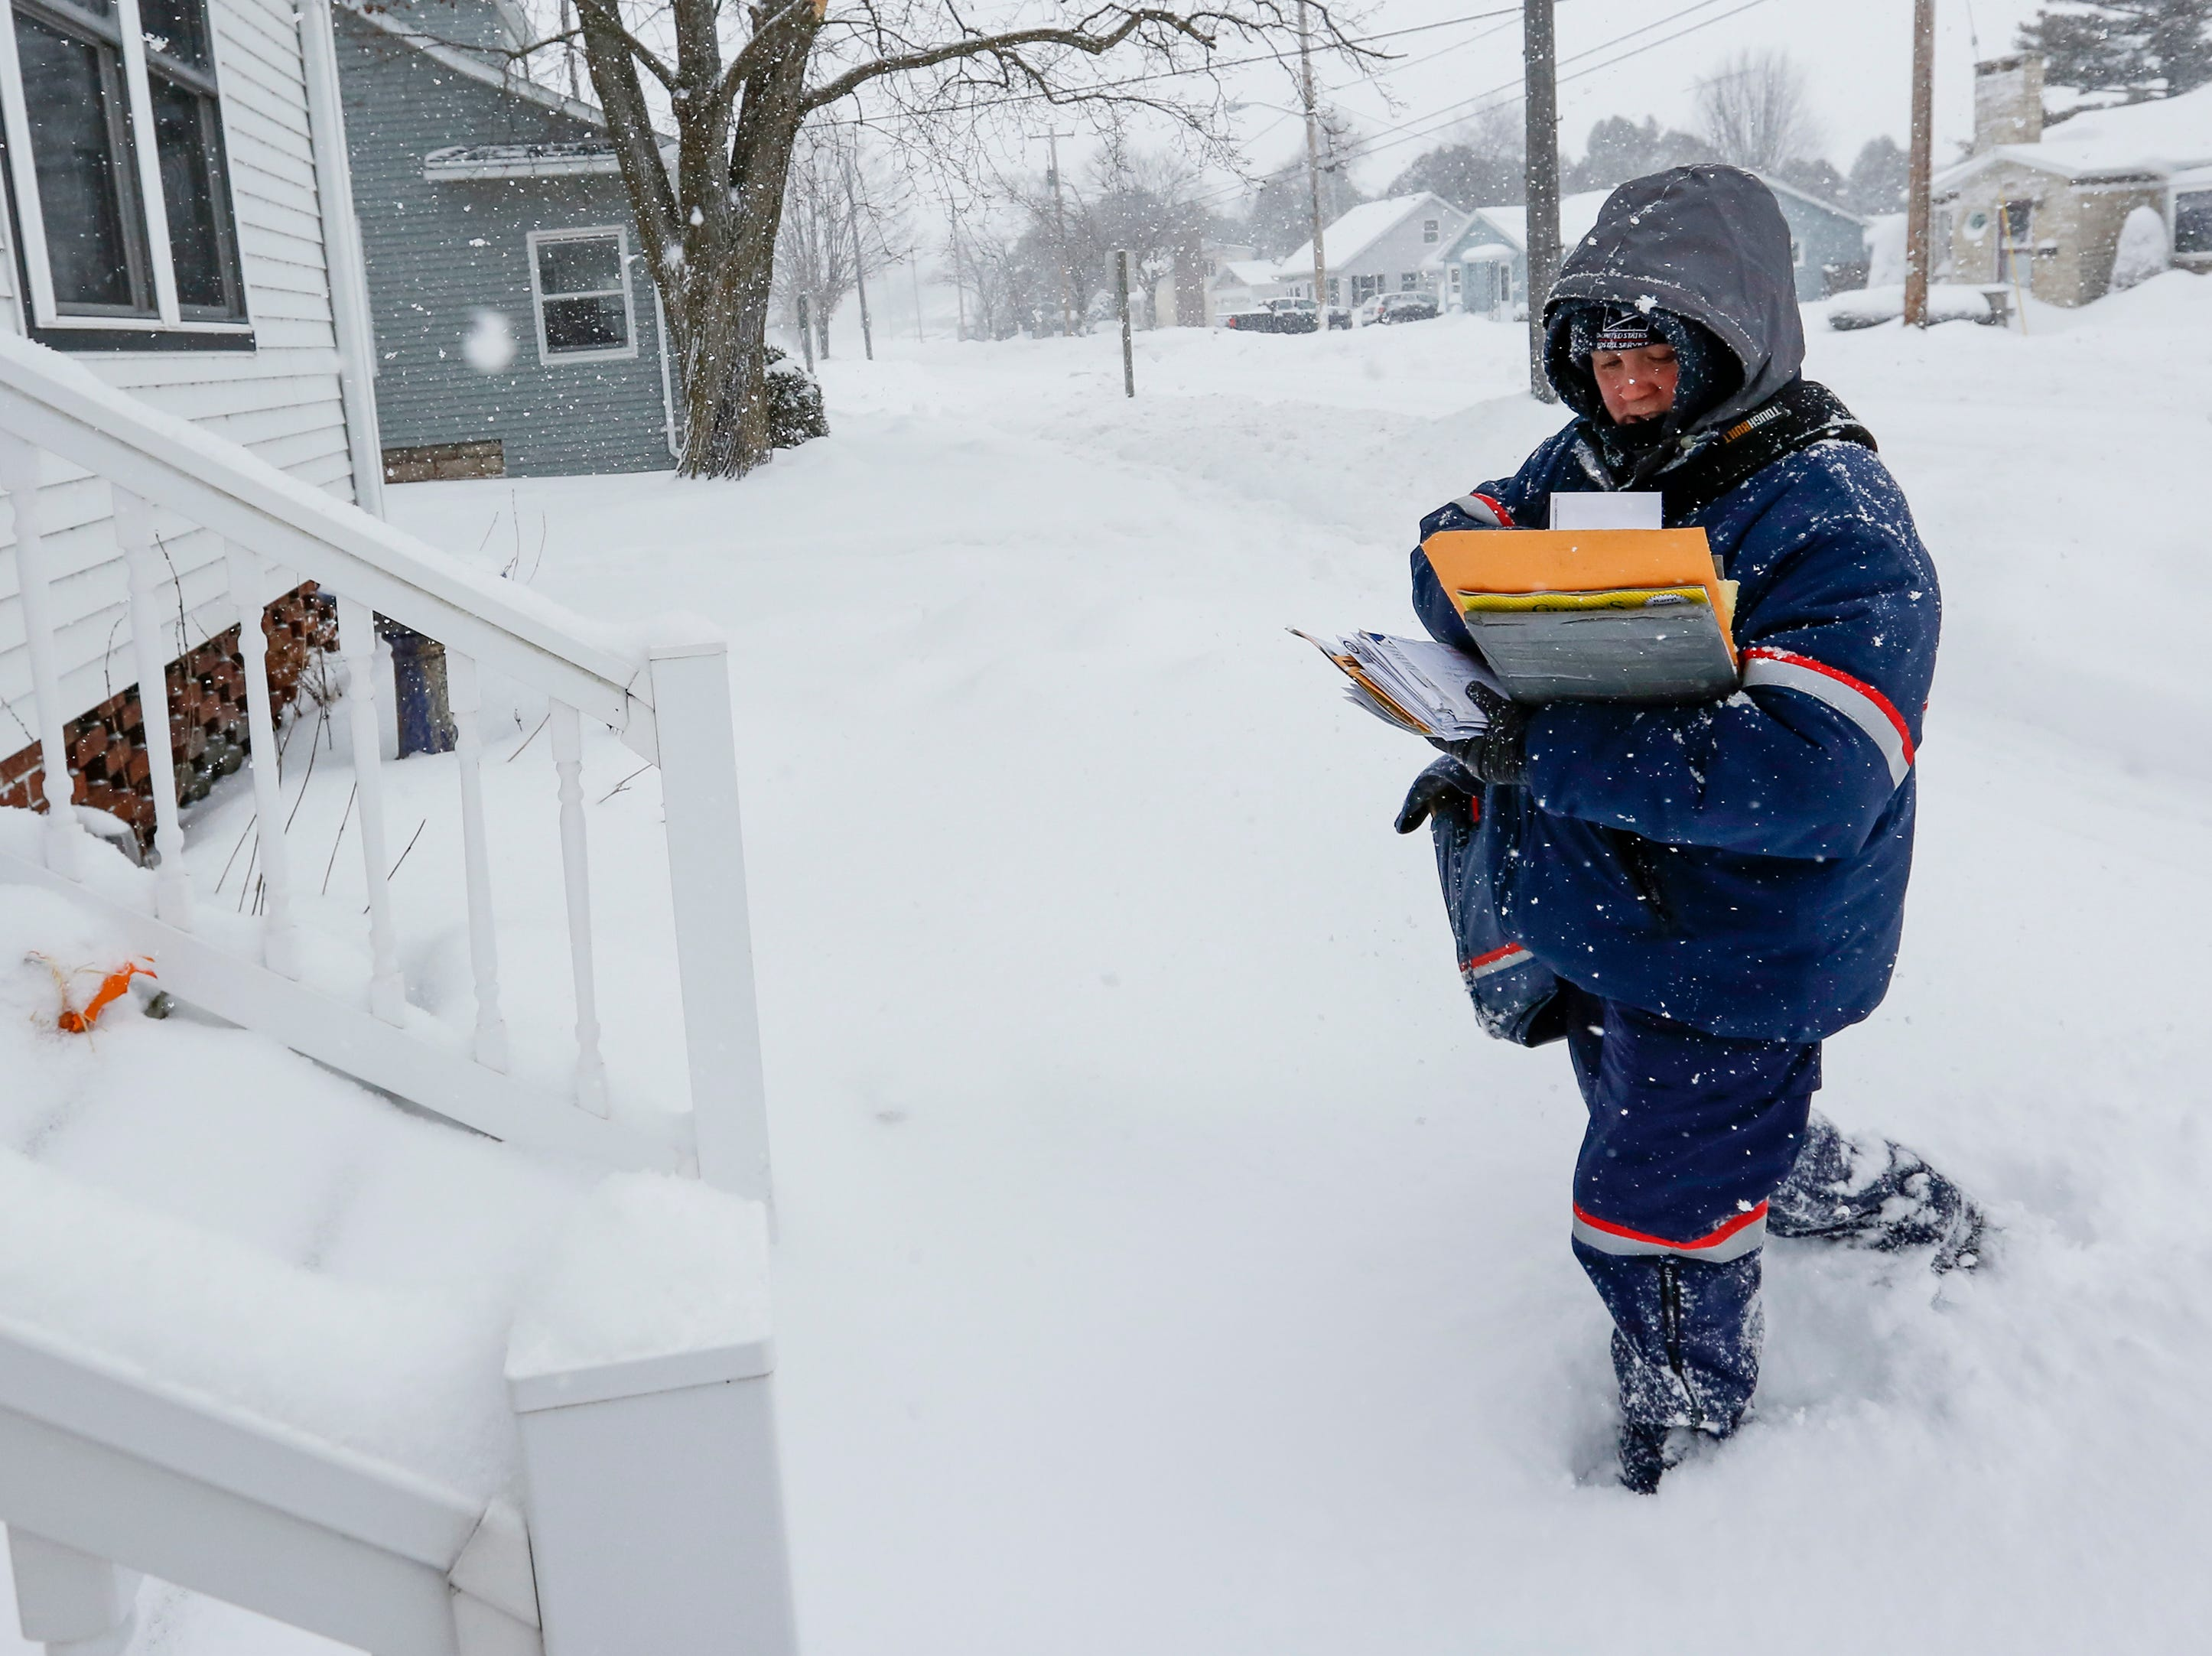 Heidi French, of the Two Rivers Post Office, delivers mail on her route during a snowstorm Monday, Jan. 28, 2019, in Two Rivers, Wis.